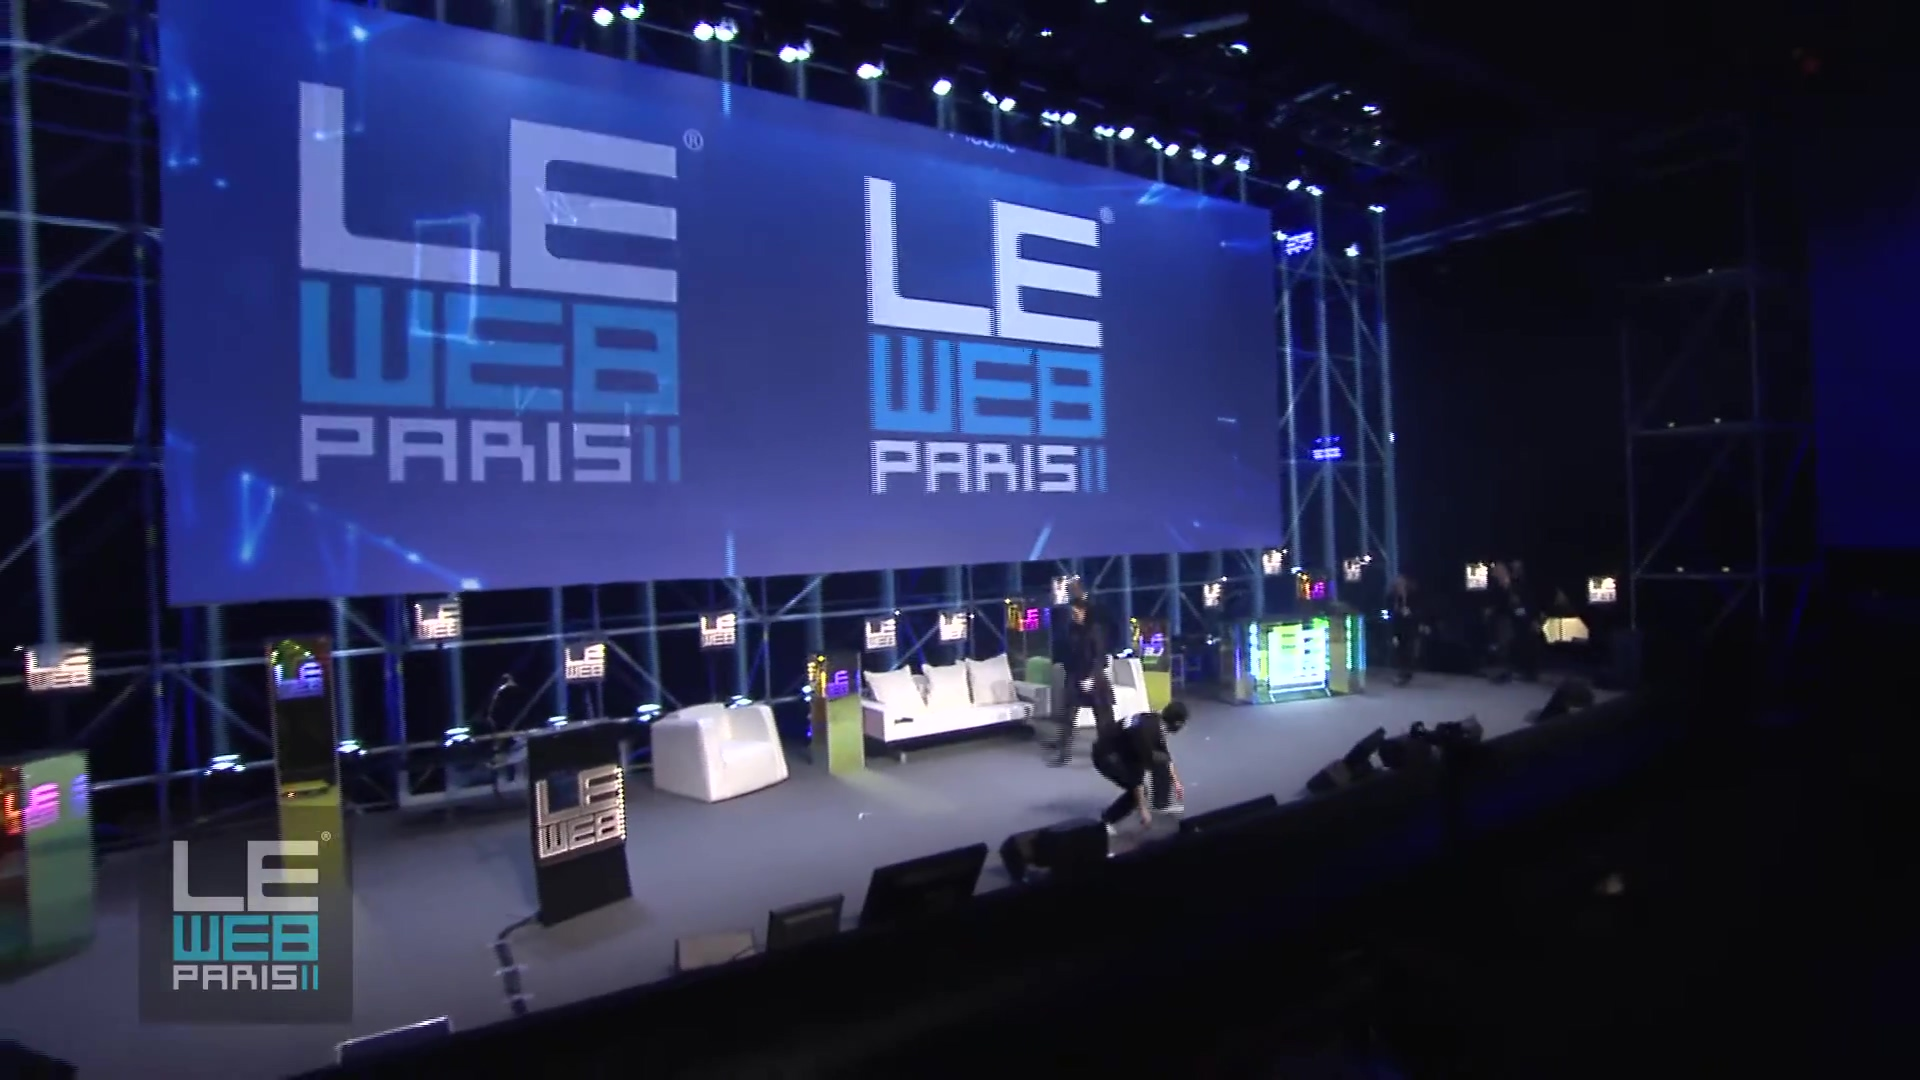 leweb-2011-opening-day-1-with-geraldine-loic-le-meur-leweb-founders